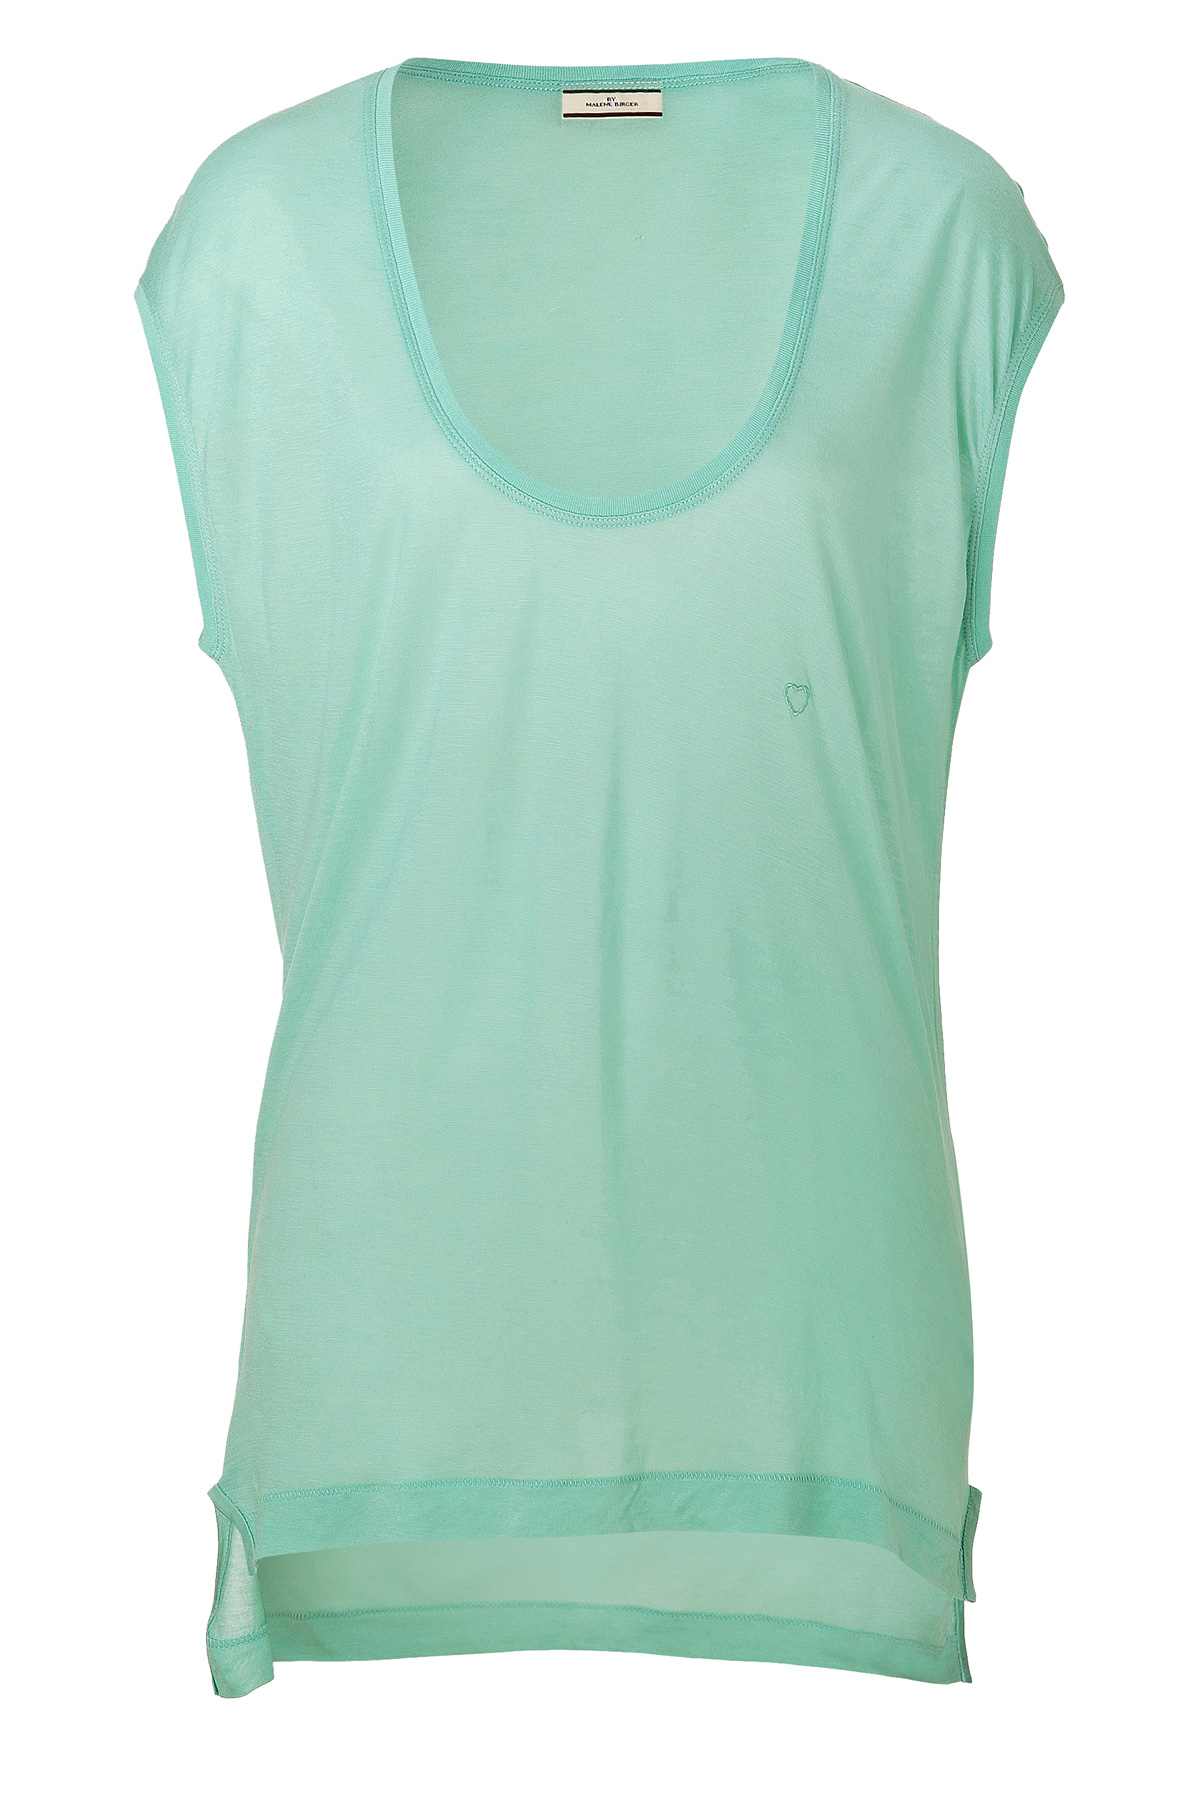 By malene birger light mint tyrwa t shirt in green mint for Mint color t shirt